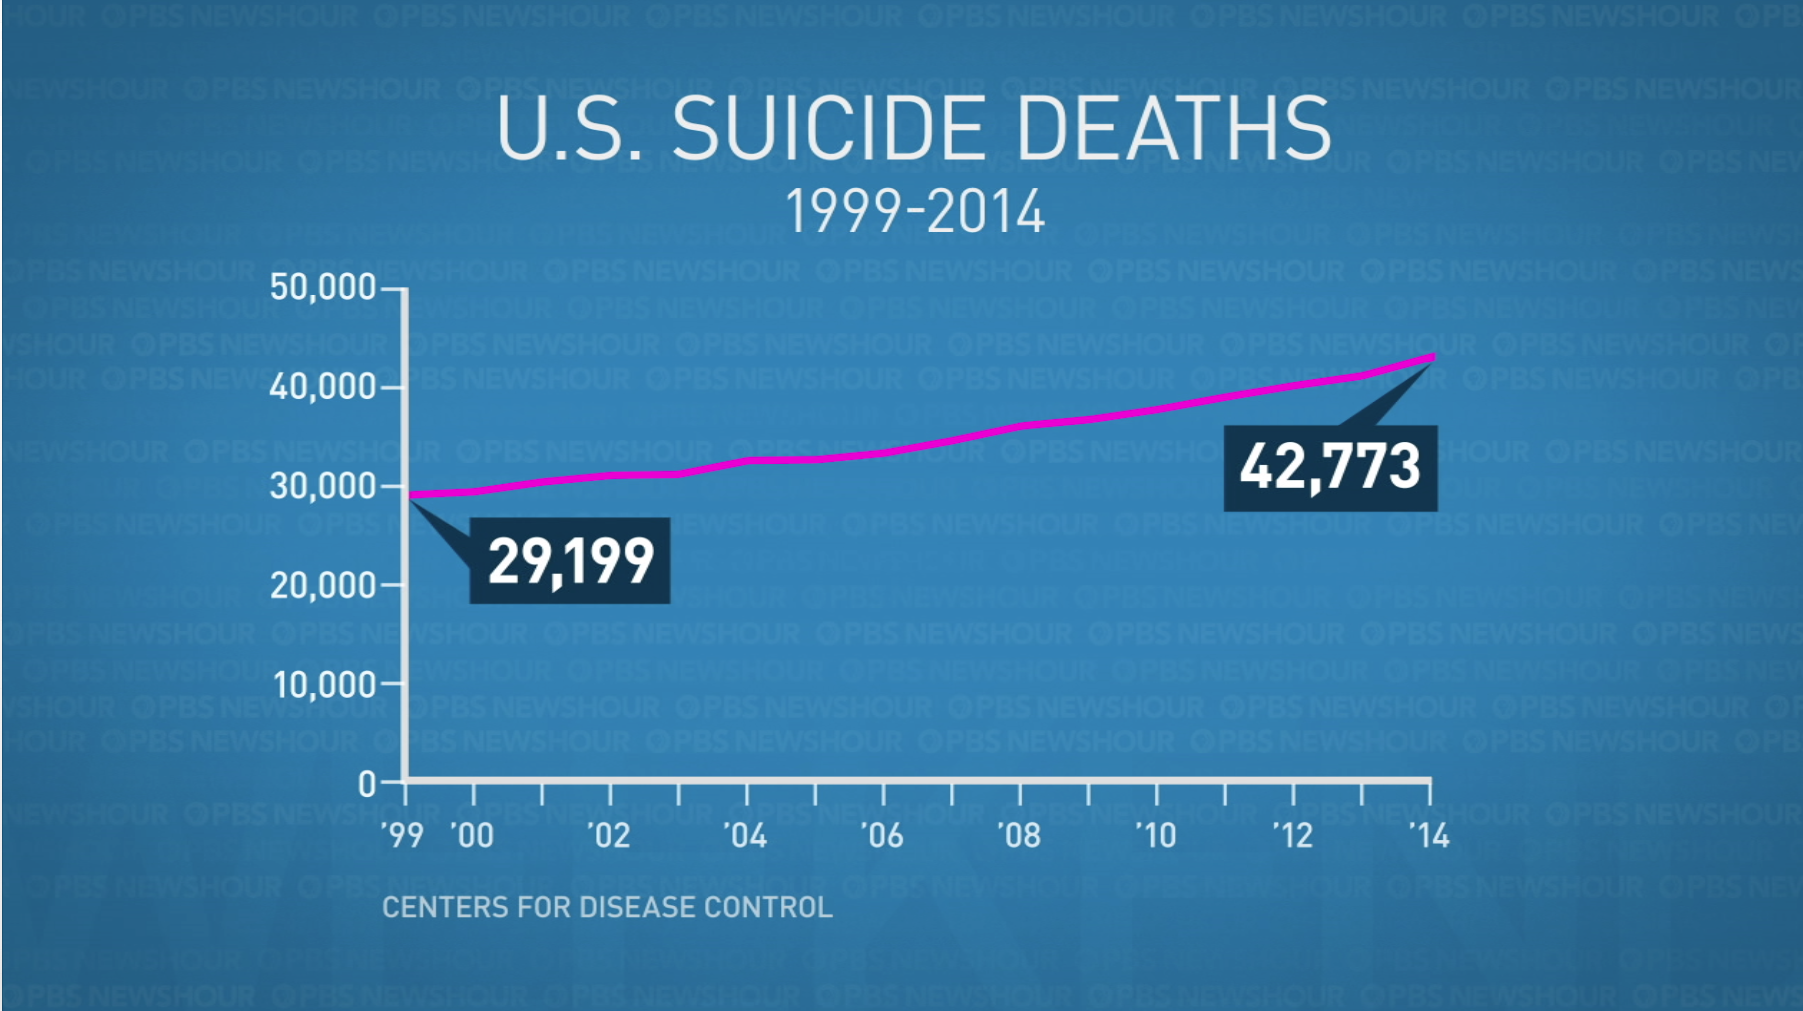 As suicides have increased in the U.S., the number of psychiatric beds available has decreased. Graphic by Lisa Overton